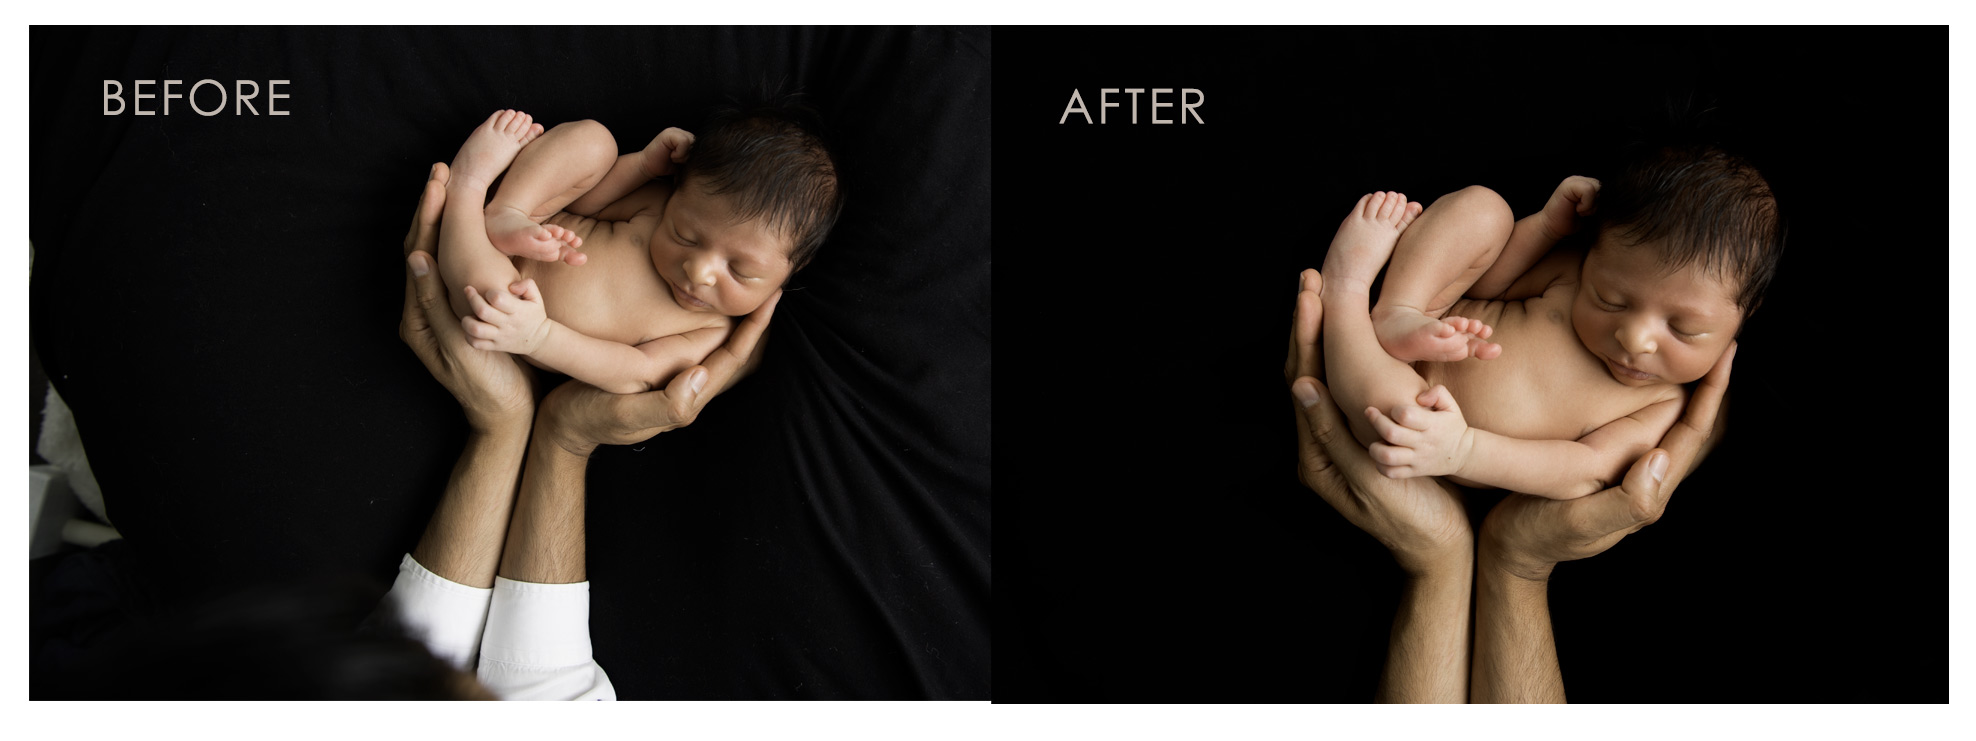 Babies should always be safe and within arms reach of an adult l Newborn Photographer Sydney